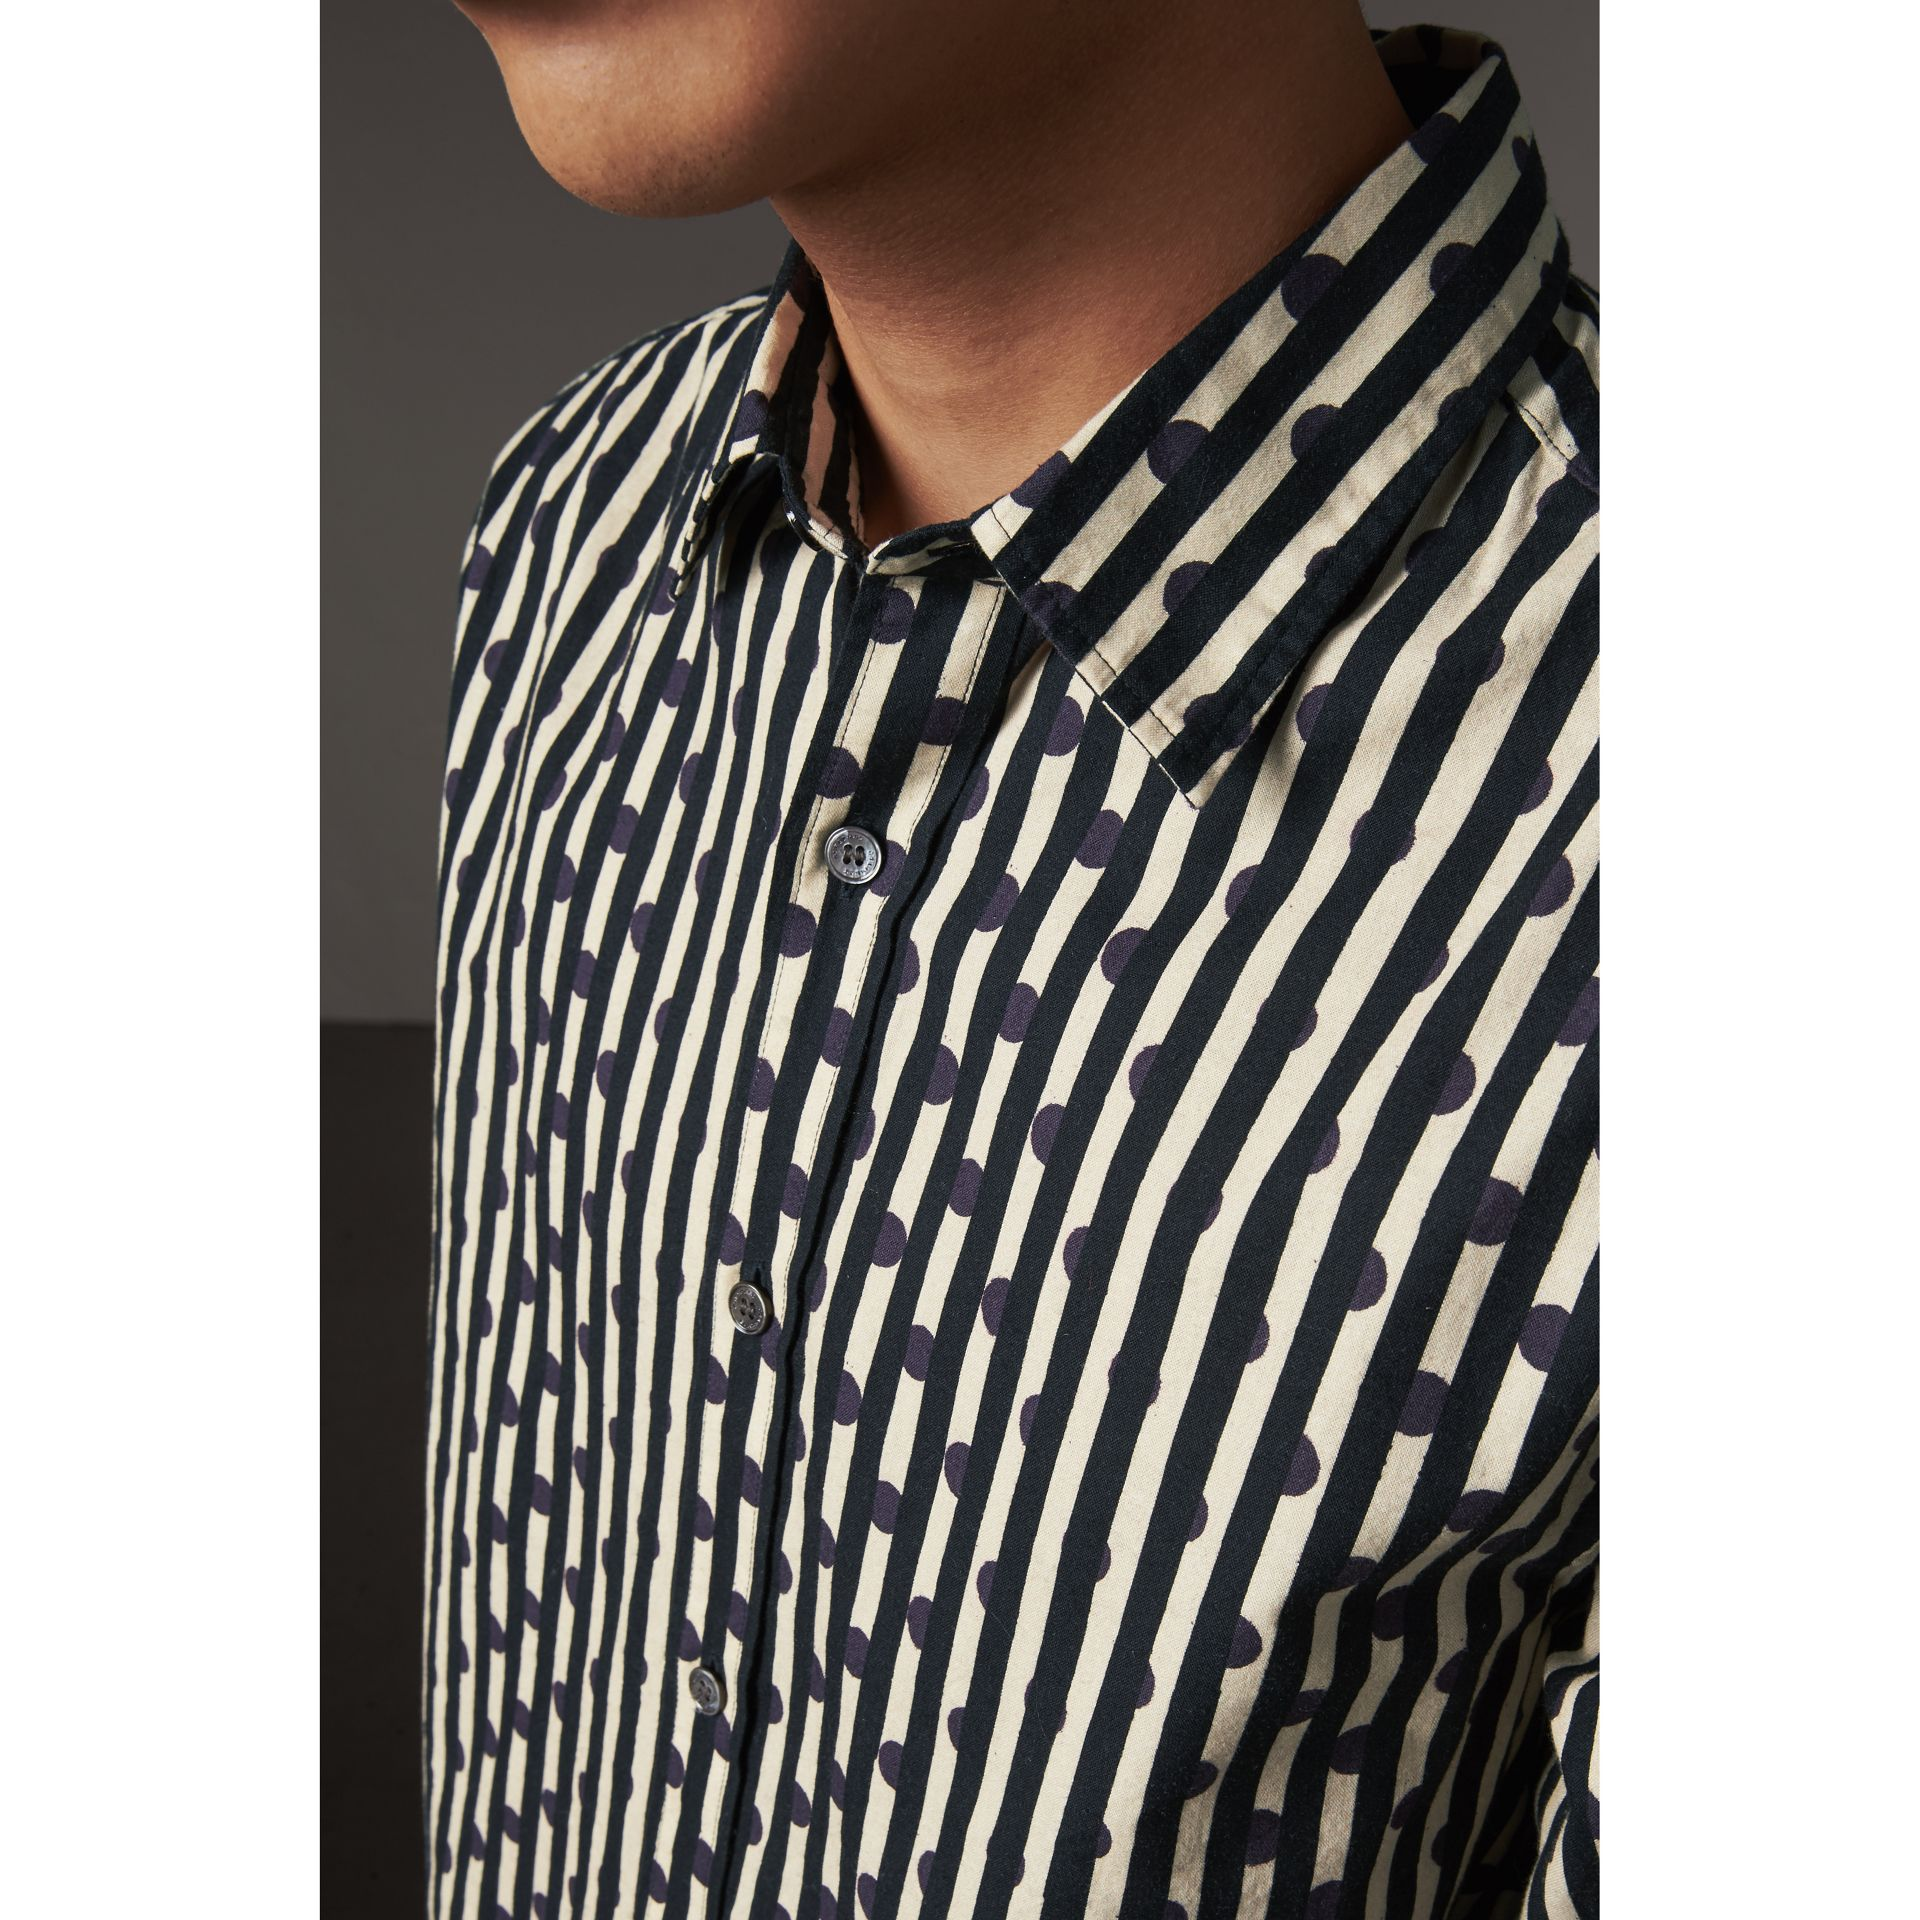 Spot and Stripe Print Cotton Shirt in Navy - Men | Burberry United Kingdom - gallery image 2